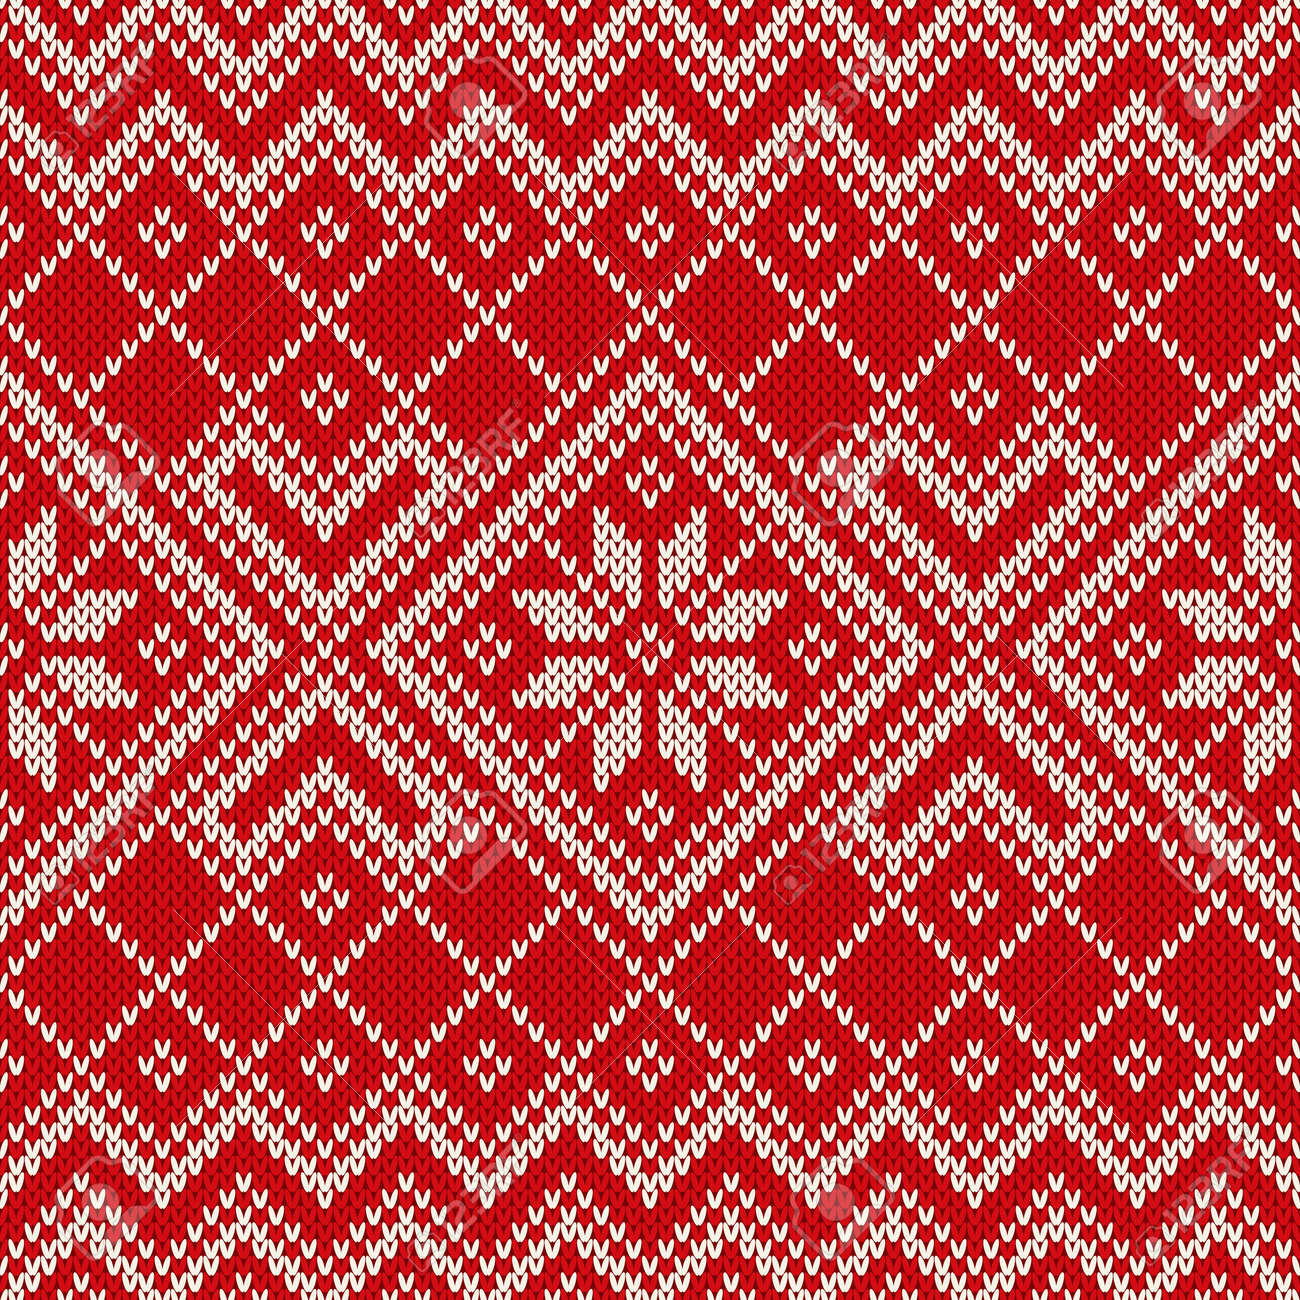 61d724b42 Christmas sweater design on the wool knitted texture. Seamless pattern  Stock Vector - 34010044